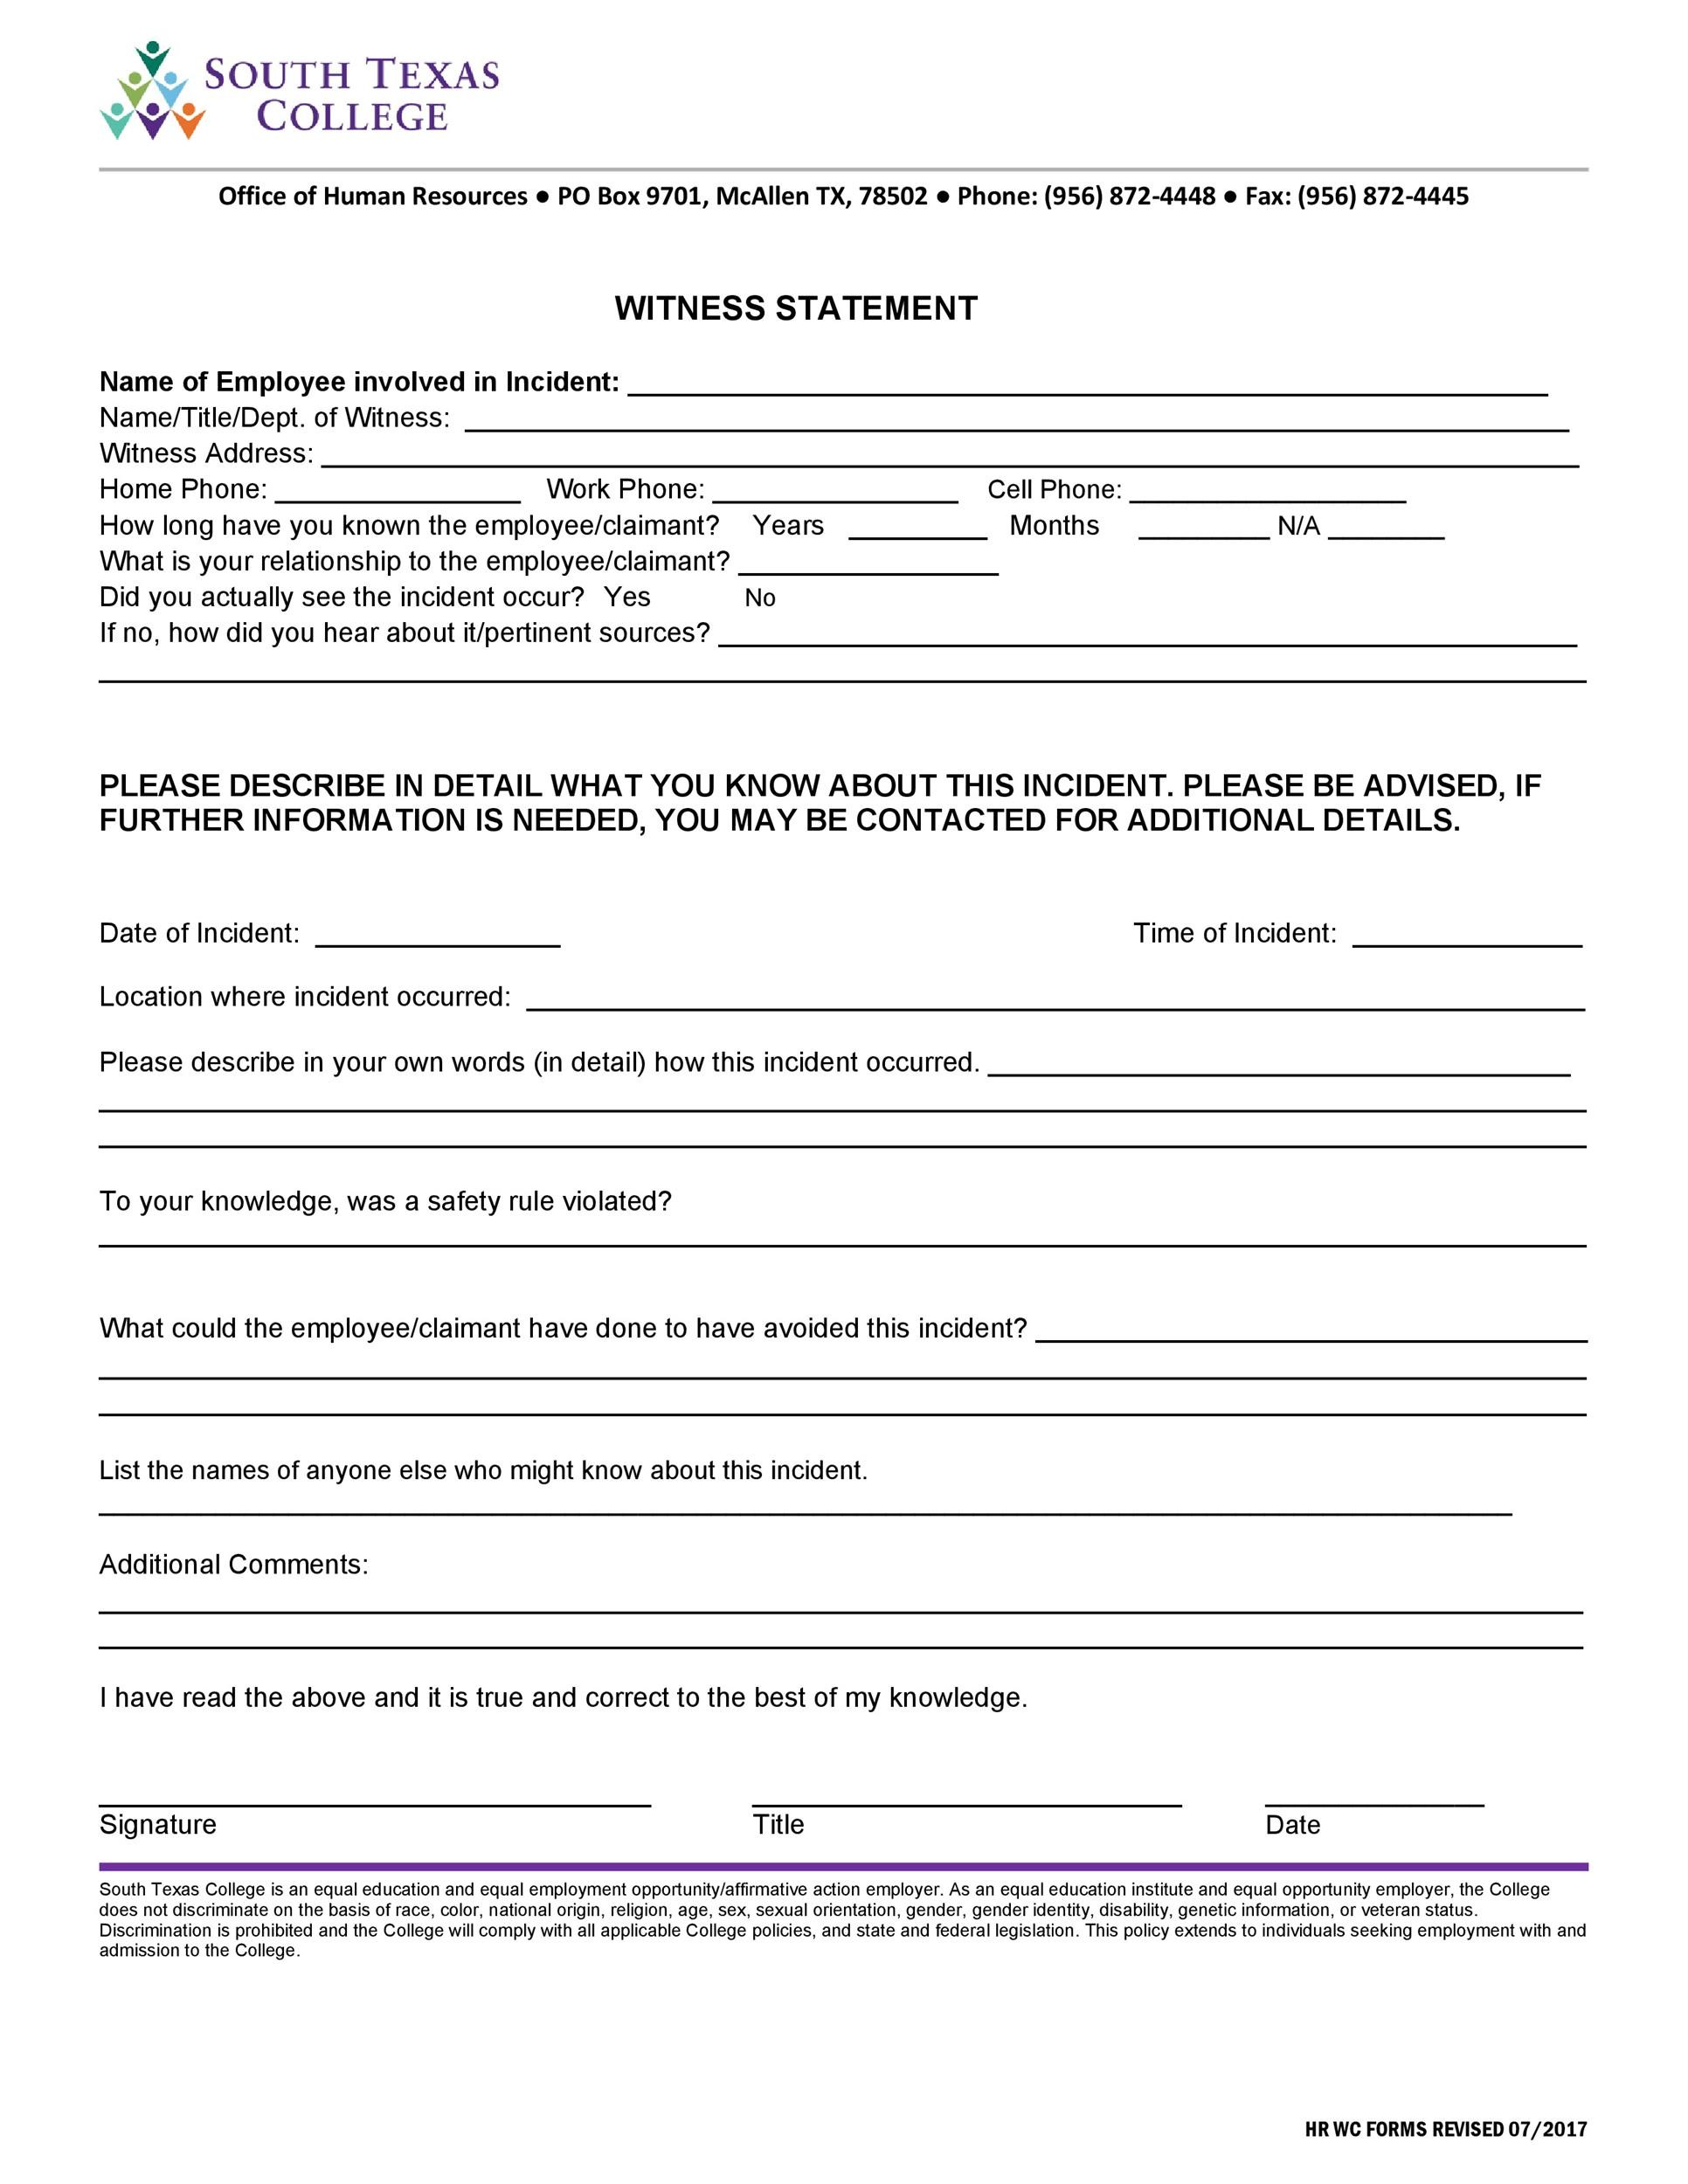 Free witness statement form 46